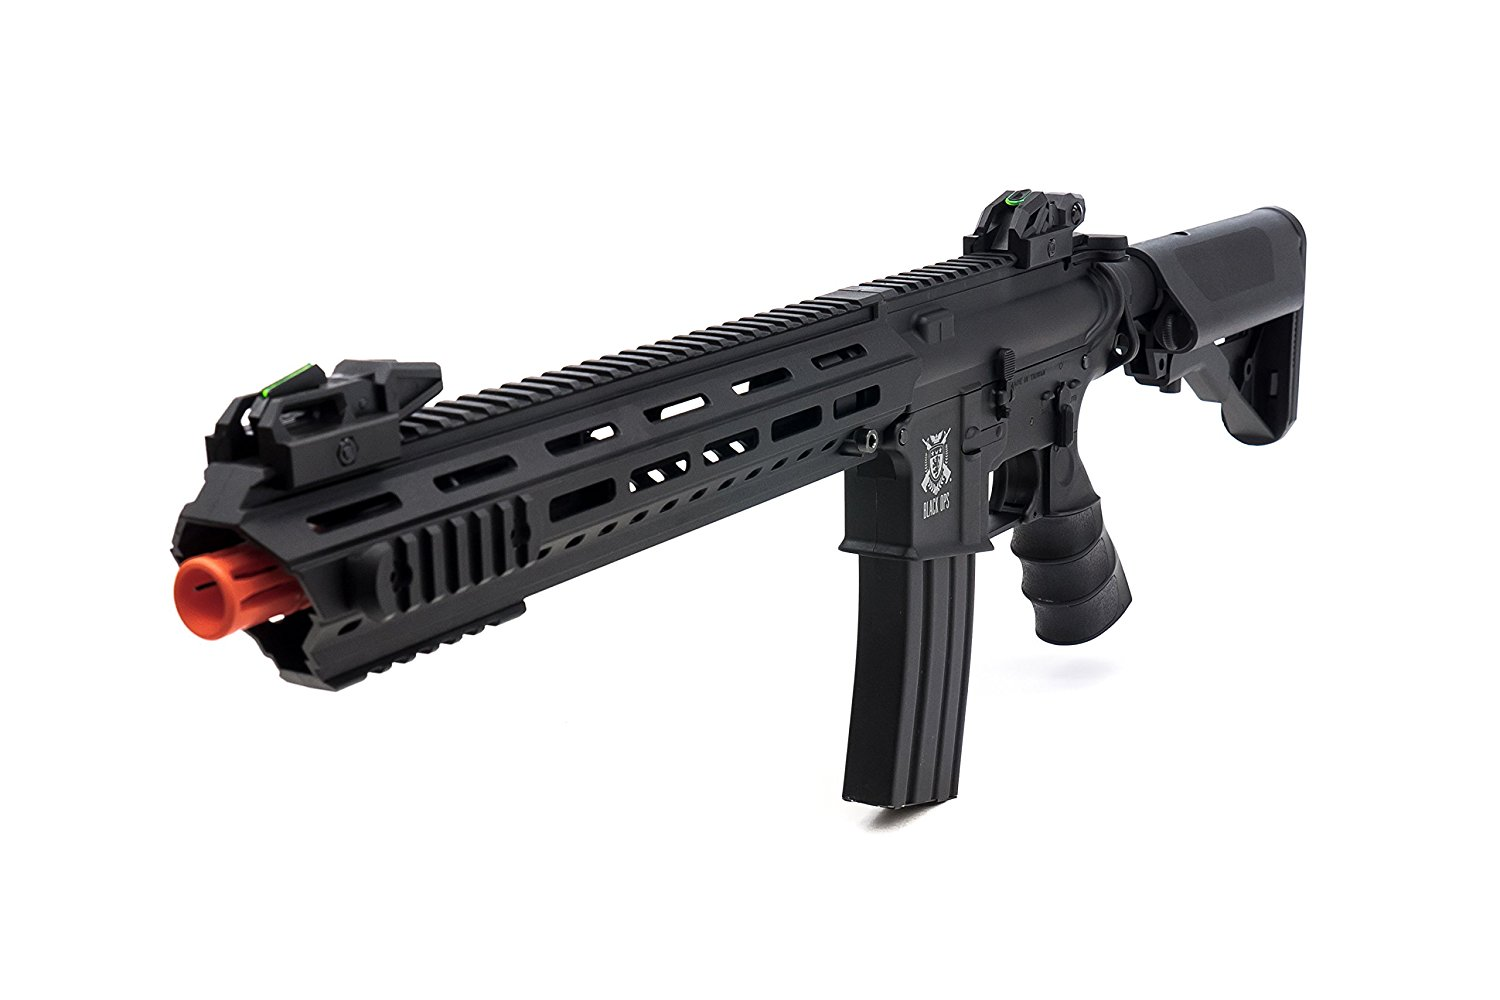 Black Ops M4 Viper Airsoft AEG Rifle